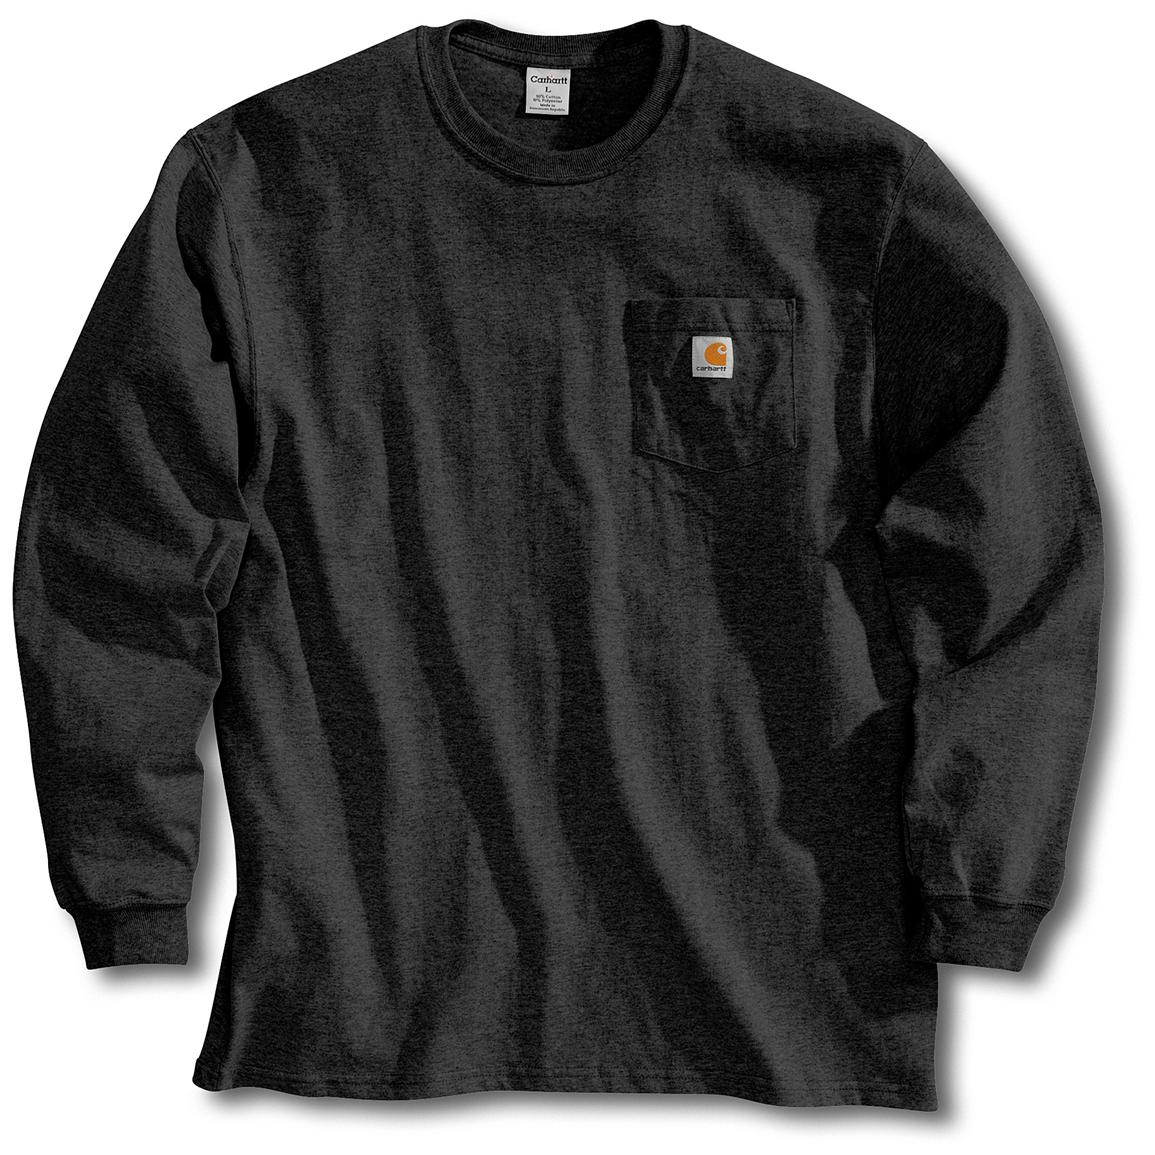 Men's Carhartt Workwear Long-Sleeve Pocket T-Shirt, Black